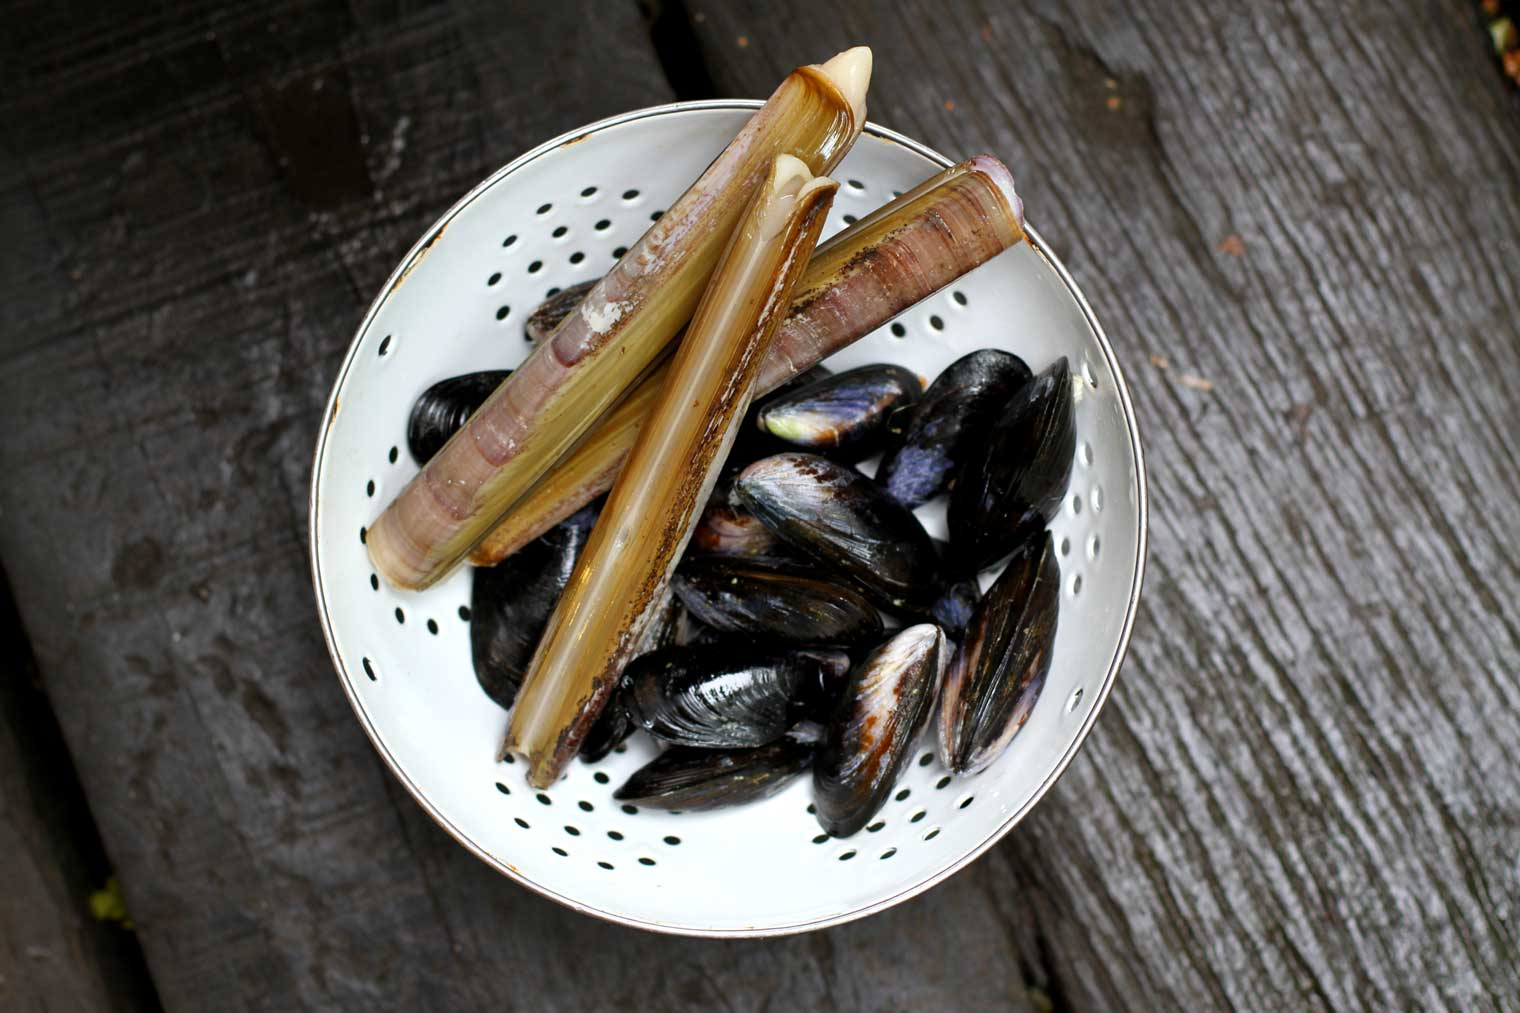 Mussels-and-razor-clams_1520